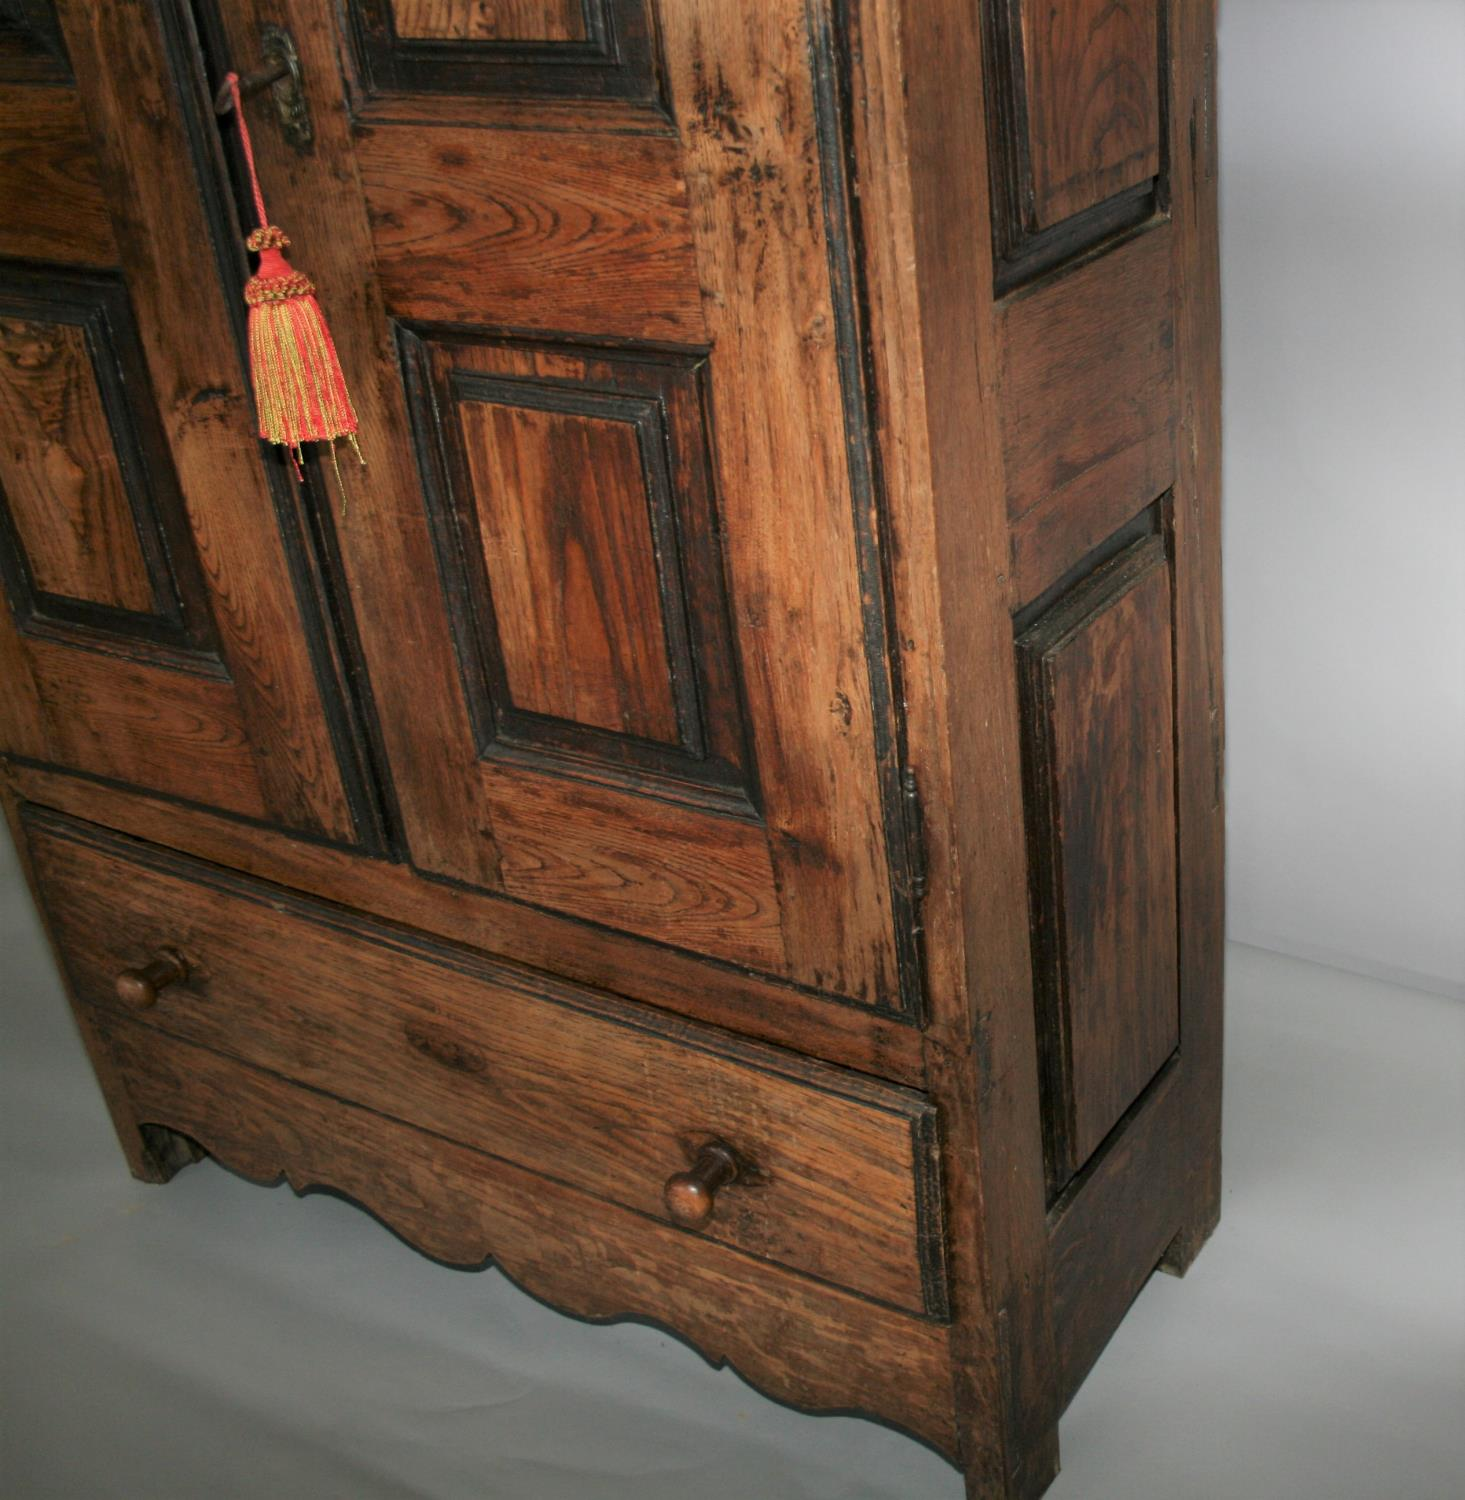 17th Century oak armoire with panel door and sides. 120W x 180H x 52D - Image 3 of 5